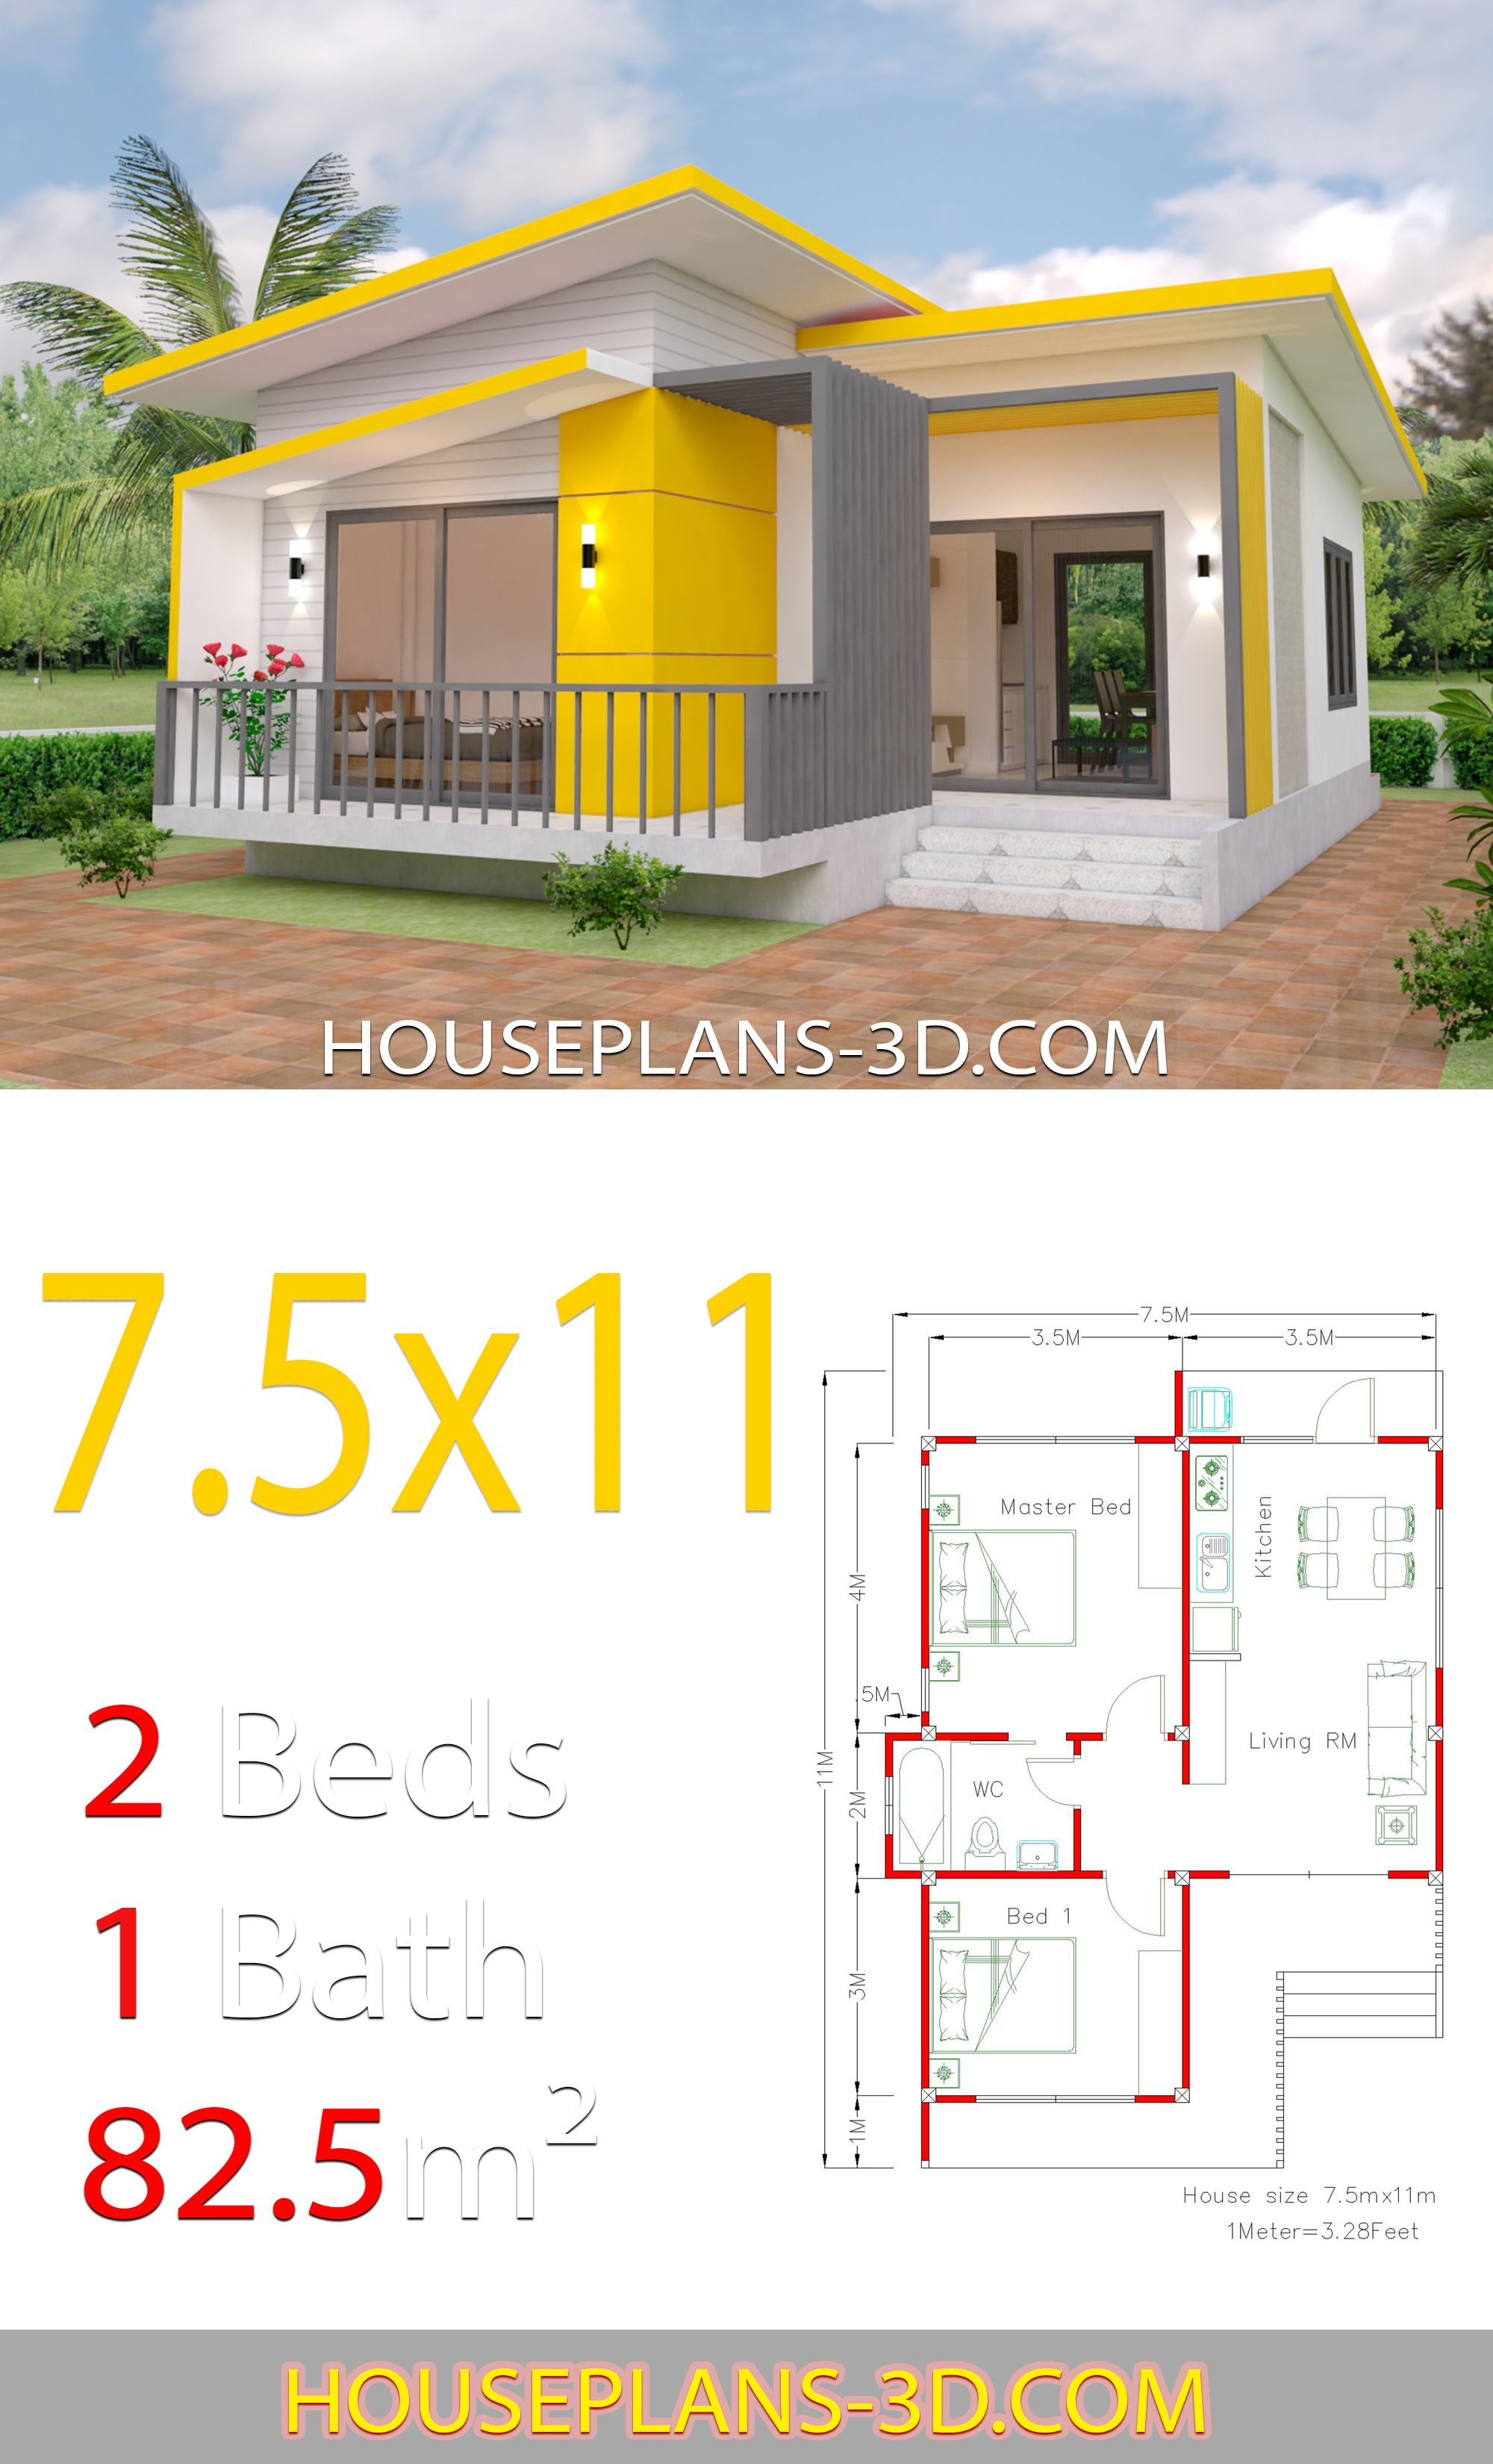 House Design 7 5x11 With 2 Bedrooms Full Plans Planos De Casas Sencillas Diseno Casas Pequenas Planos De Casas Economicas